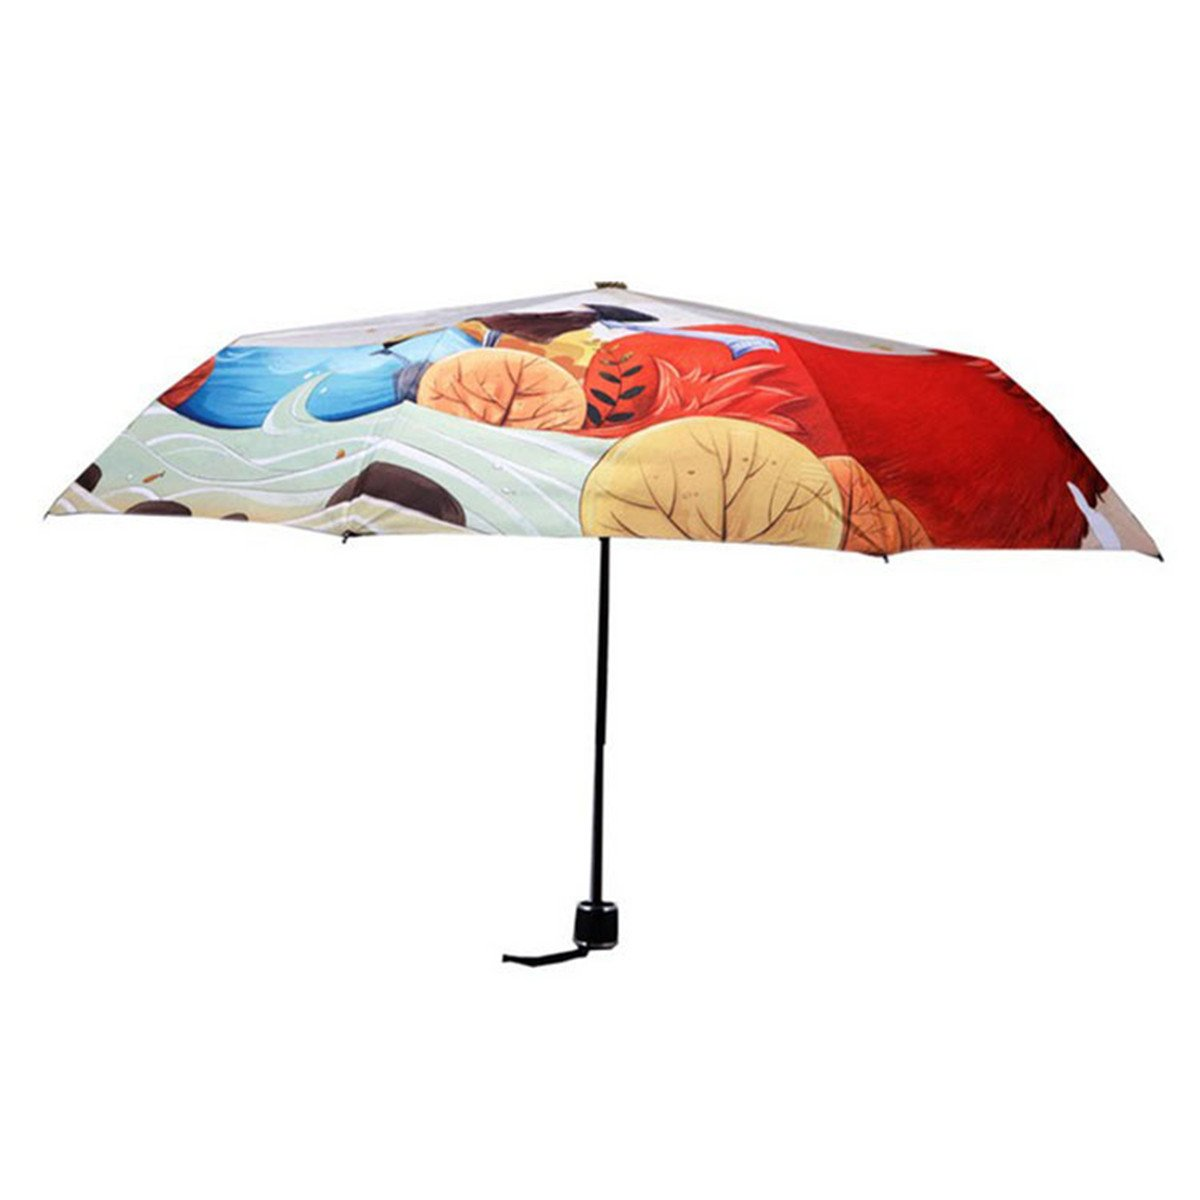 Ruick Artistic Umbrella Light-weighted Folding Umbrella with Anti-UV and Windproof Funtions Suitable for Both Sunny and Raining Days- Available In 5 Patterns (Fox) by Ruick (Image #9)